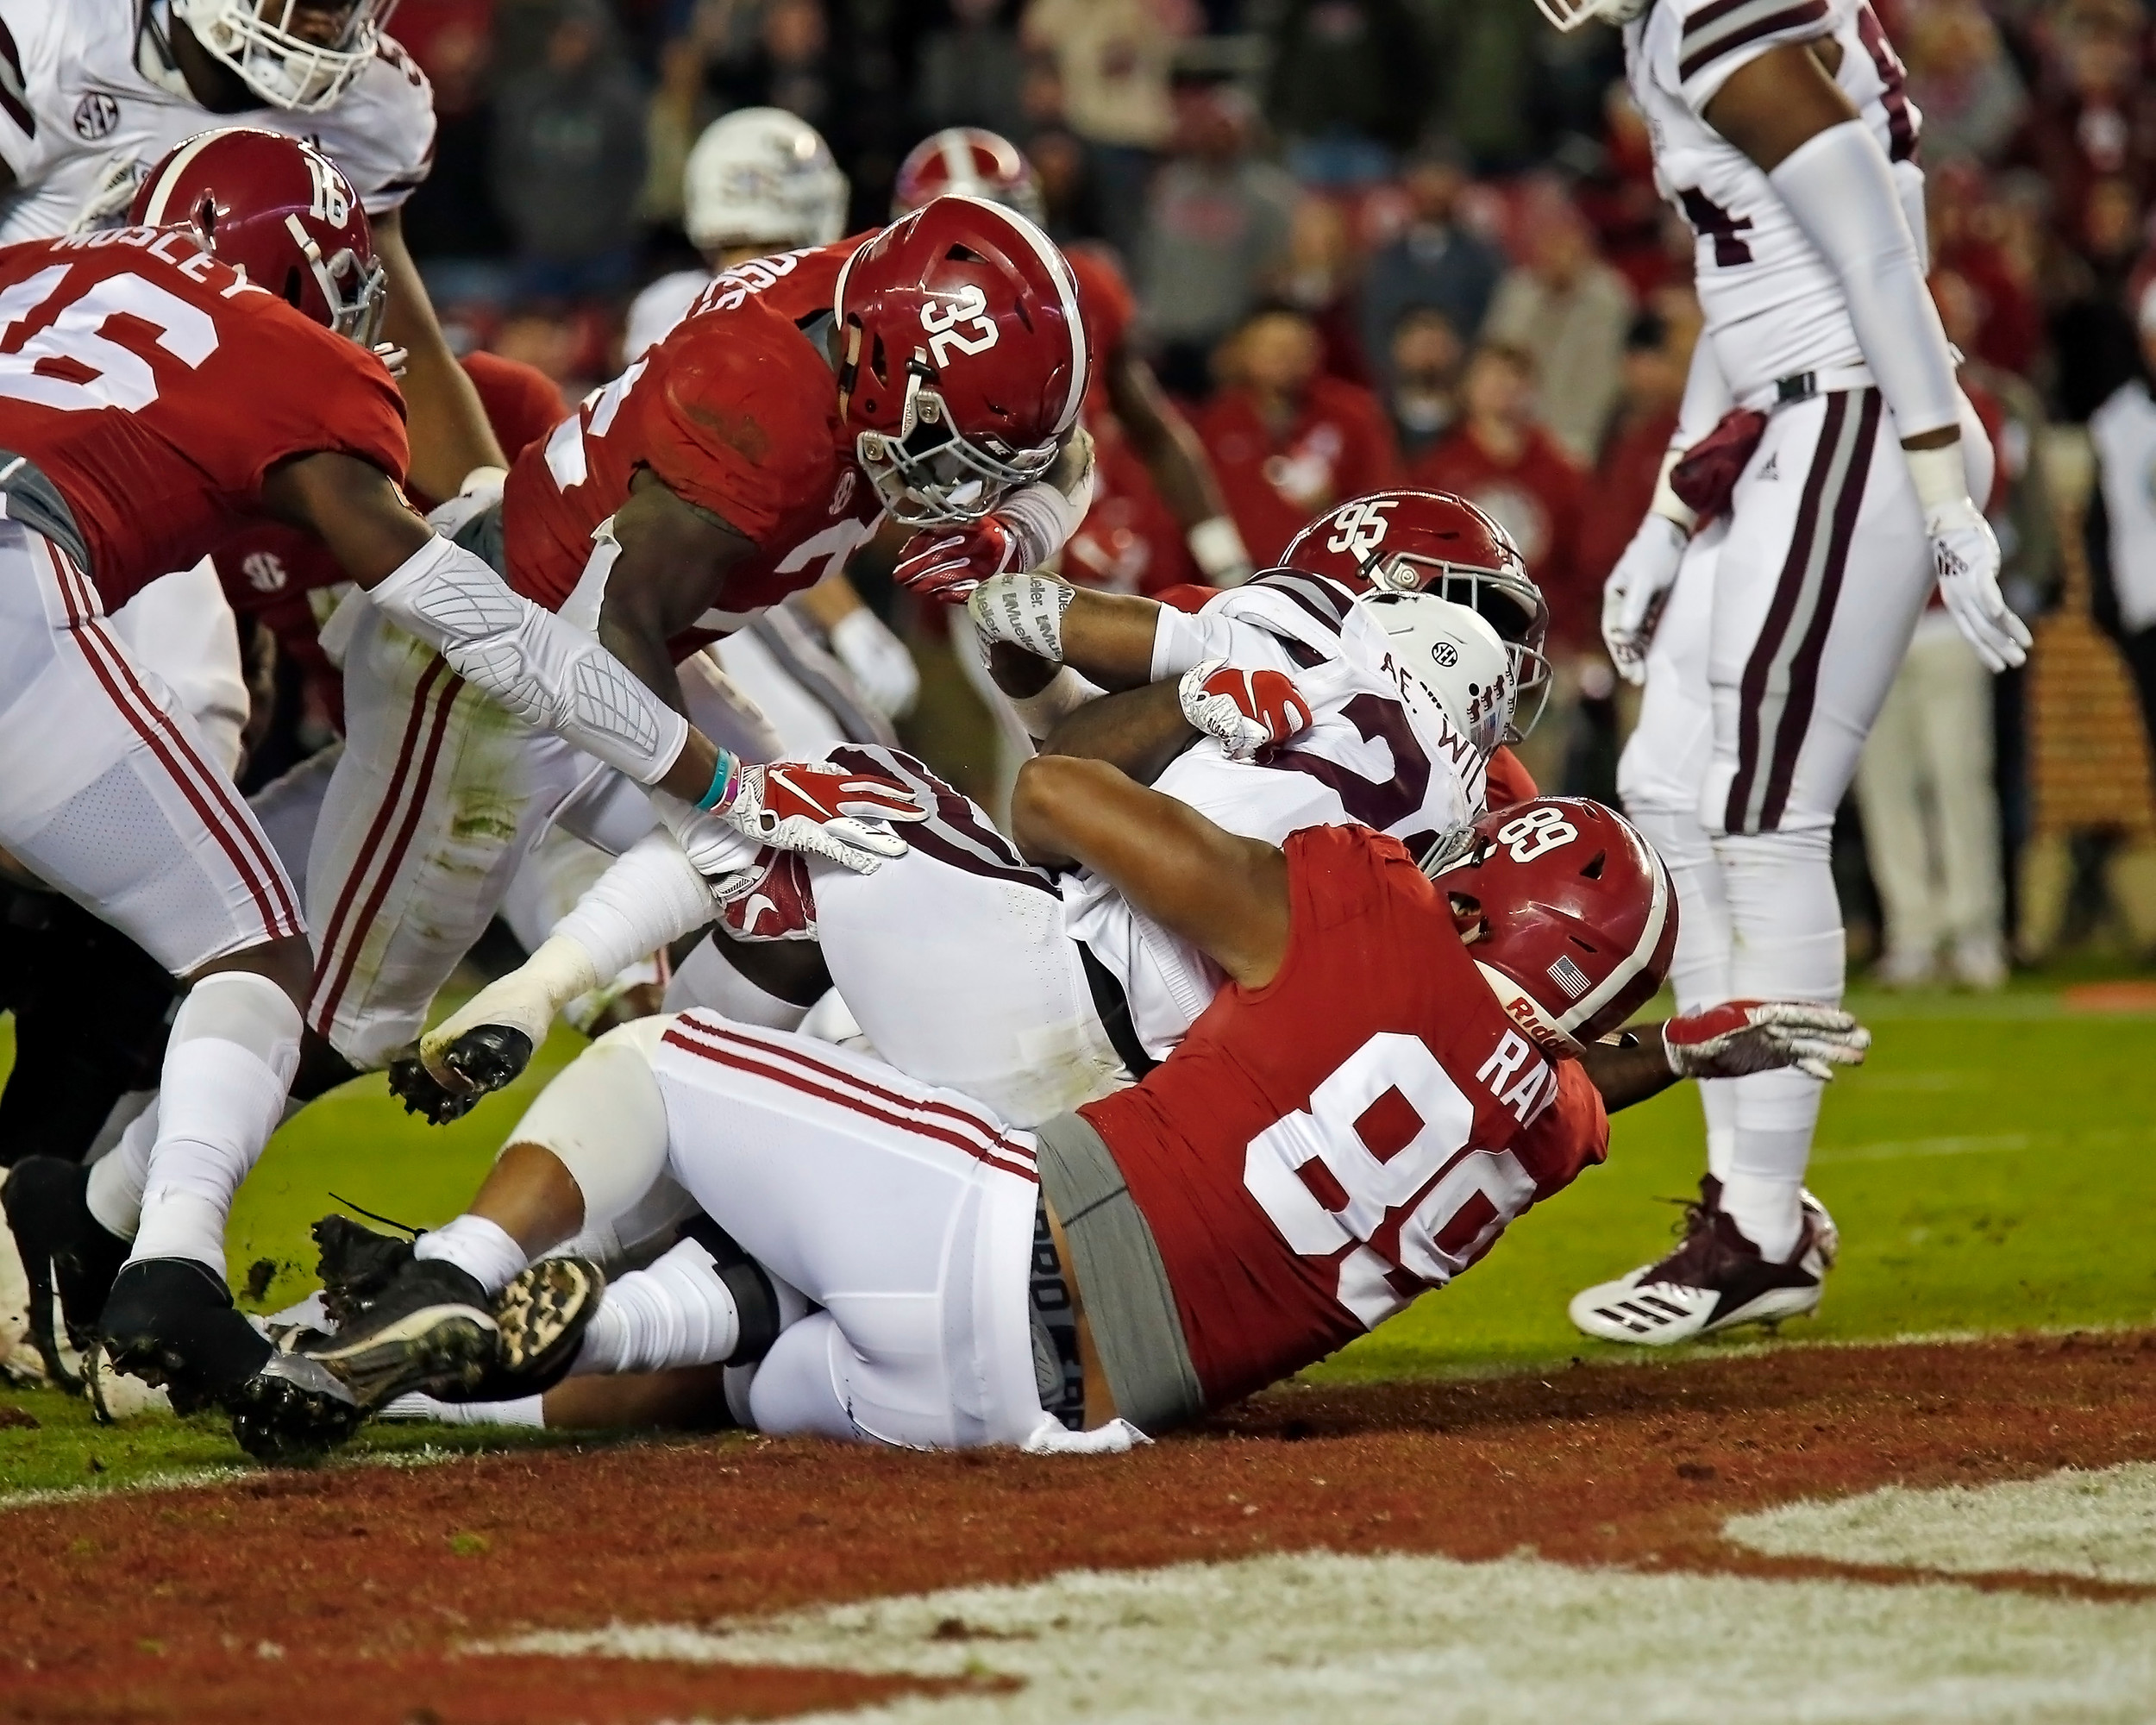 Alabama Crimson Tide defensive linemen Johnny Dwight (95) and LaBryan Ray (89) stop Mississippi State for no gain during the second half of the game between Mississippi State and the University of Alabama at Bryant-Denny Stadium in Tuscaloosa, Al. Credit: Jason Clark / Daily Mountain Eagle